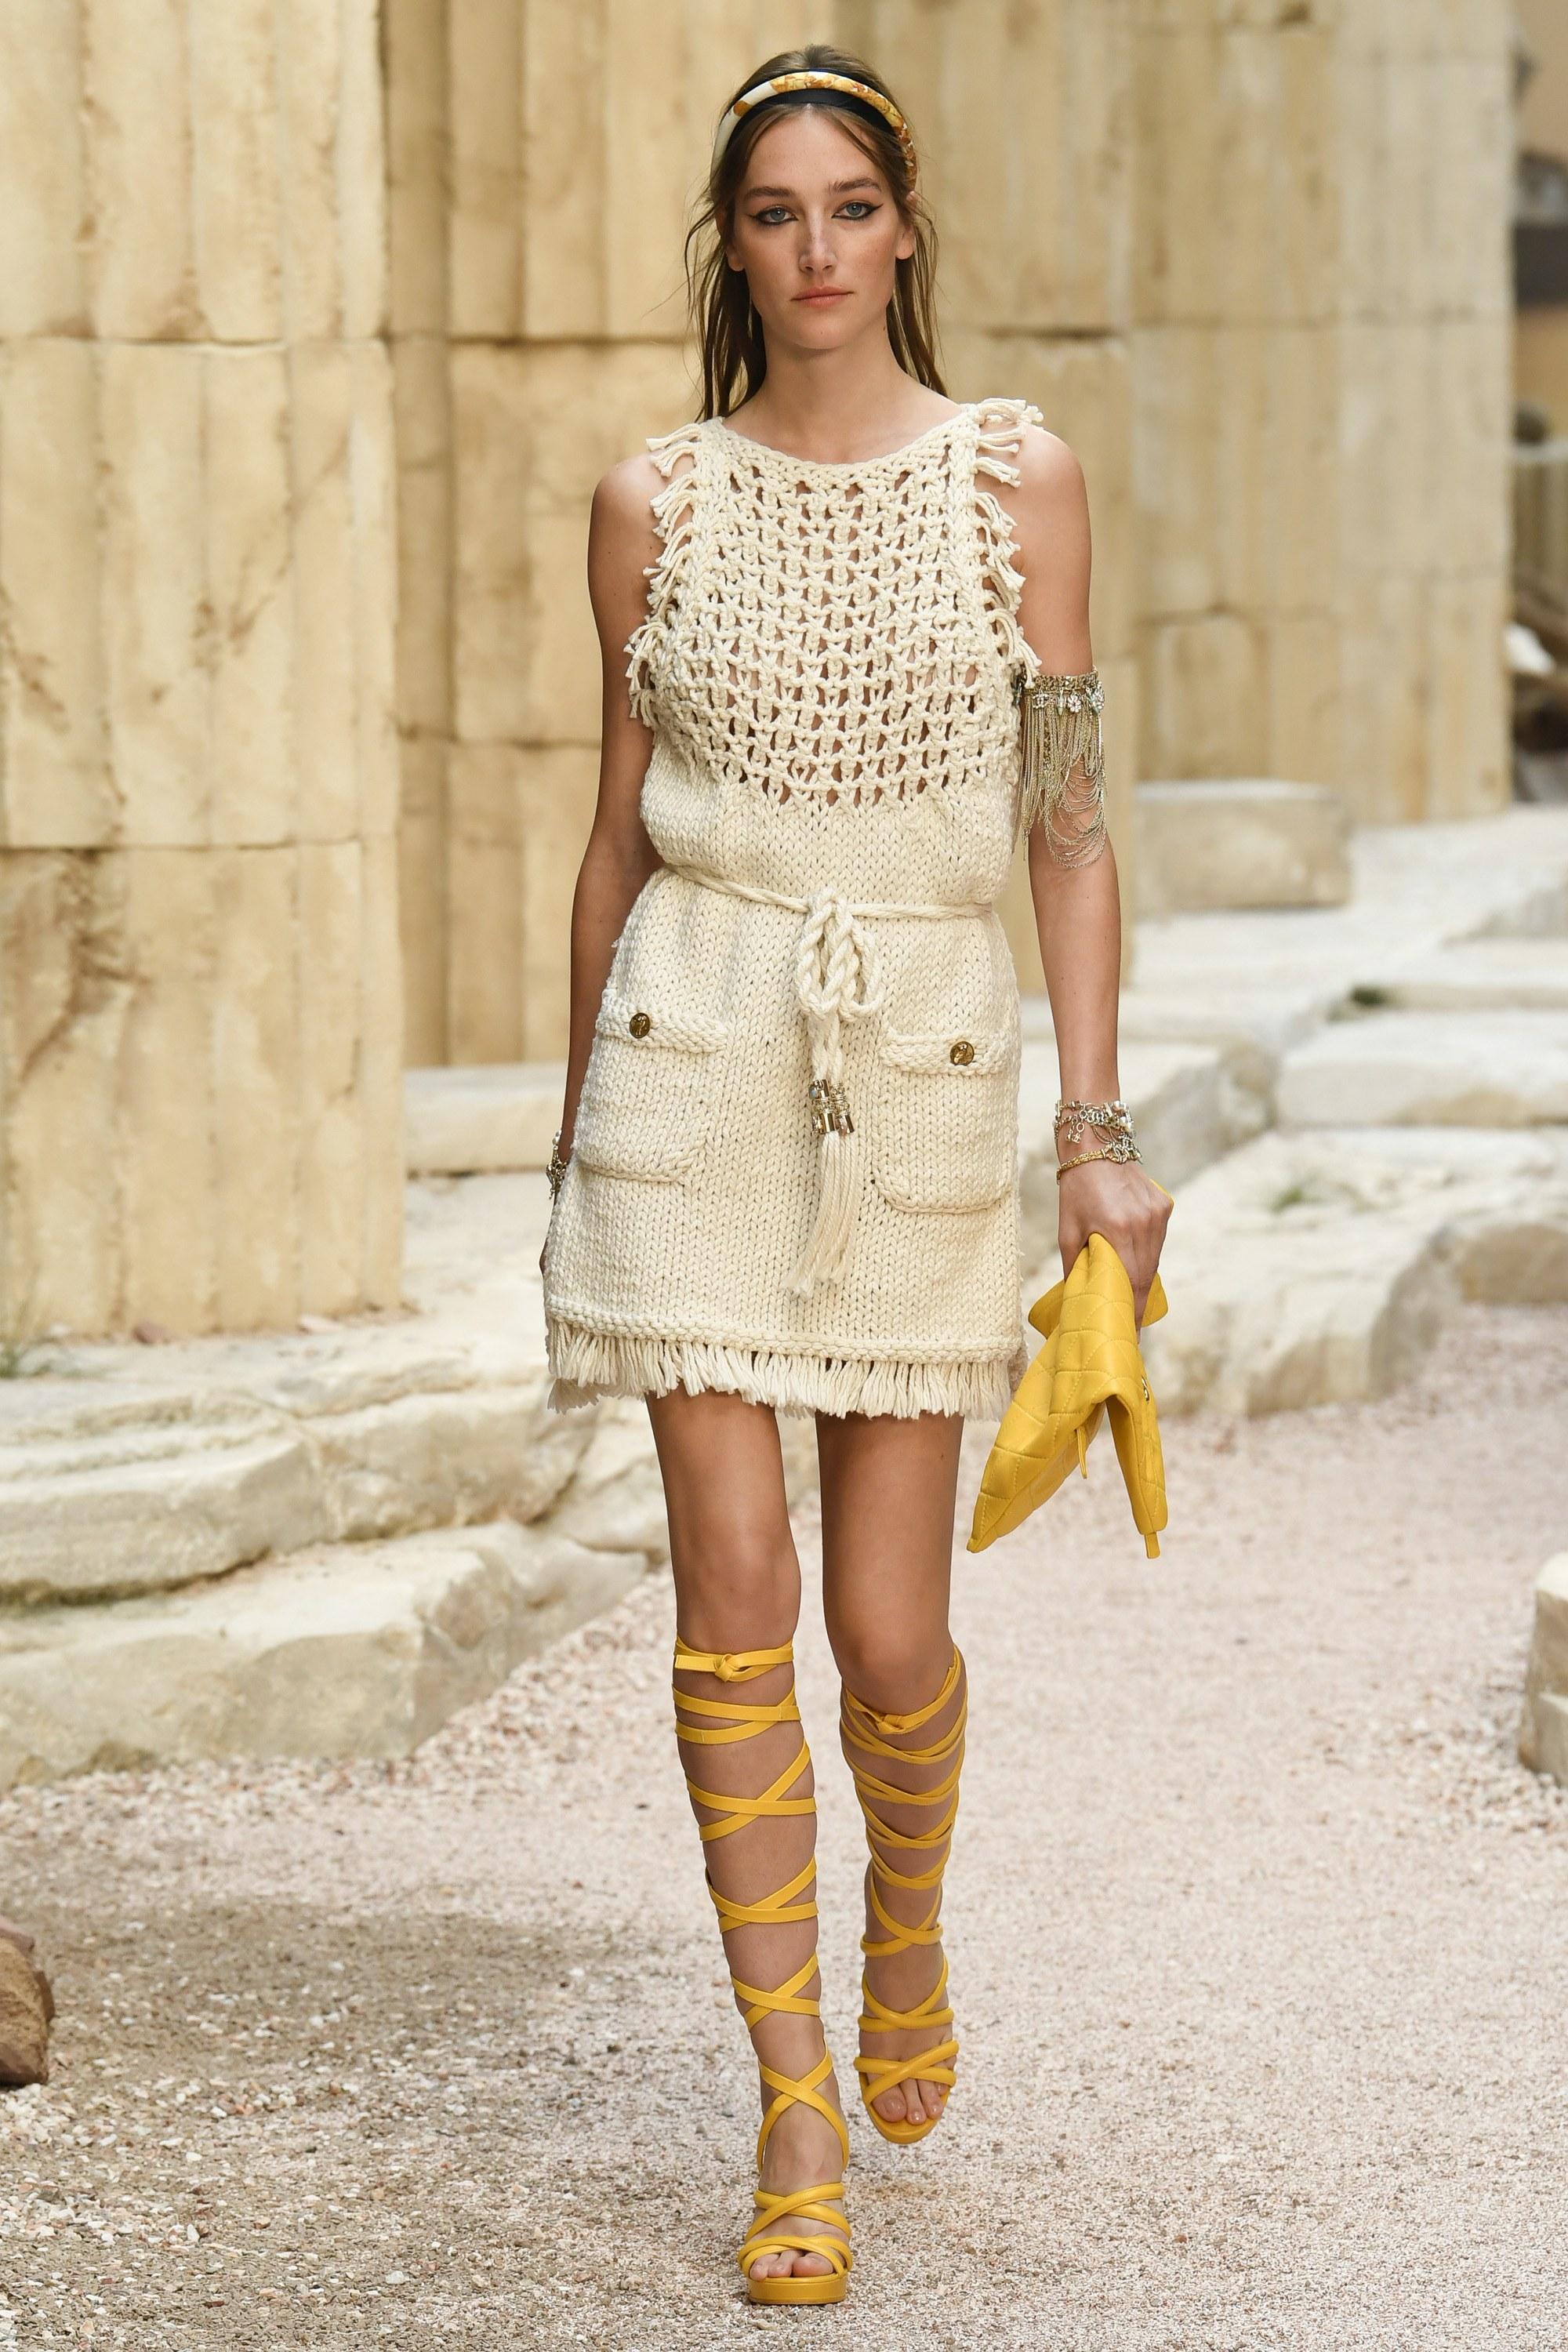 Chanel Cruise 2018 The Modernity Of Antiquity Portraits Of Elegance